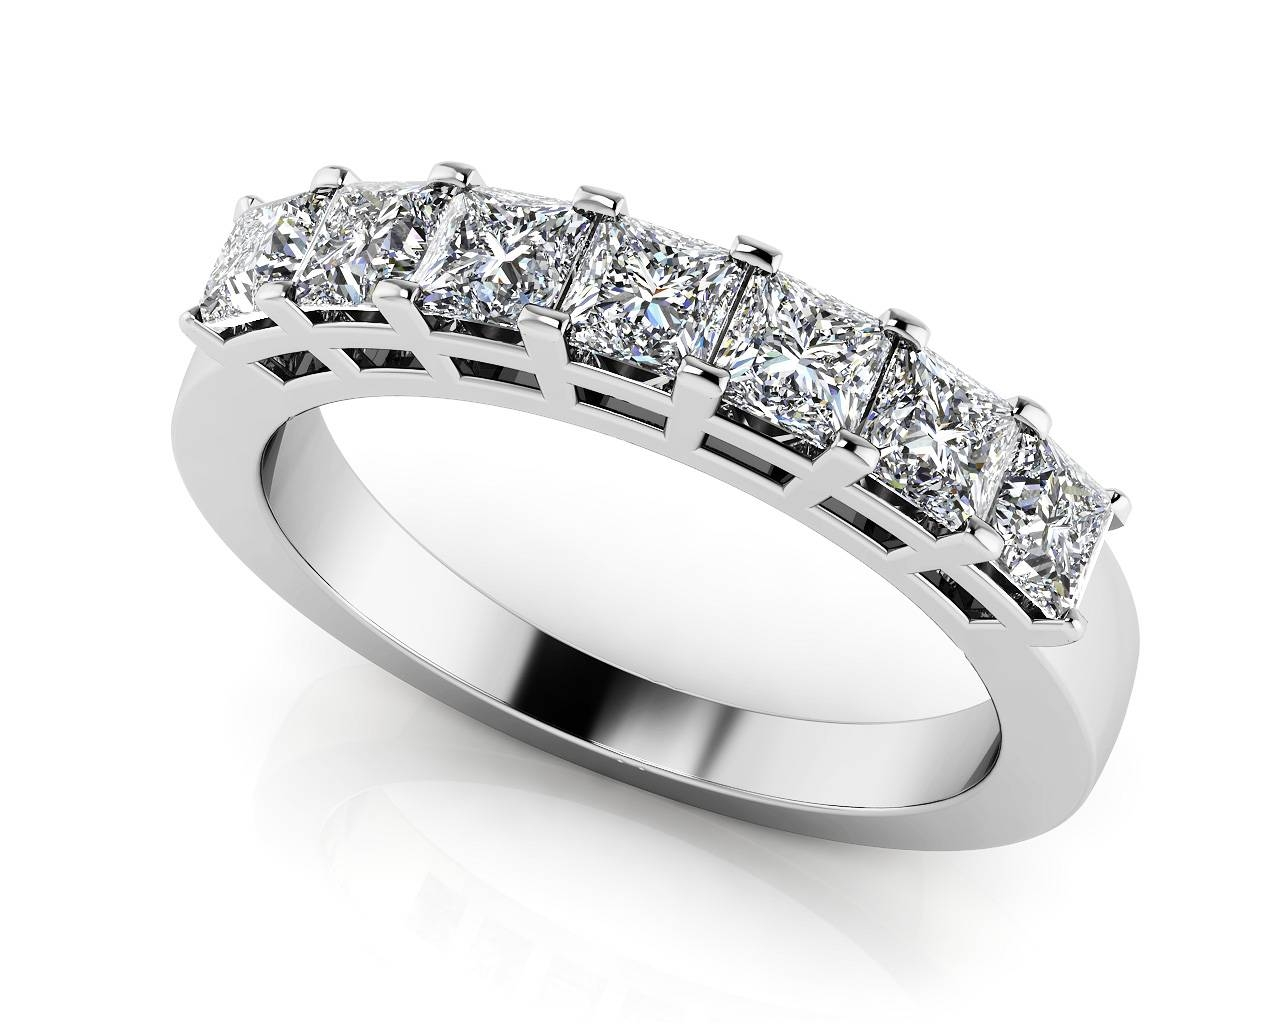 Design Your Own Diamond Anniversary Ring & Eternity Ring Throughout Newest Anniversary Rings Designs (View 9 of 25)